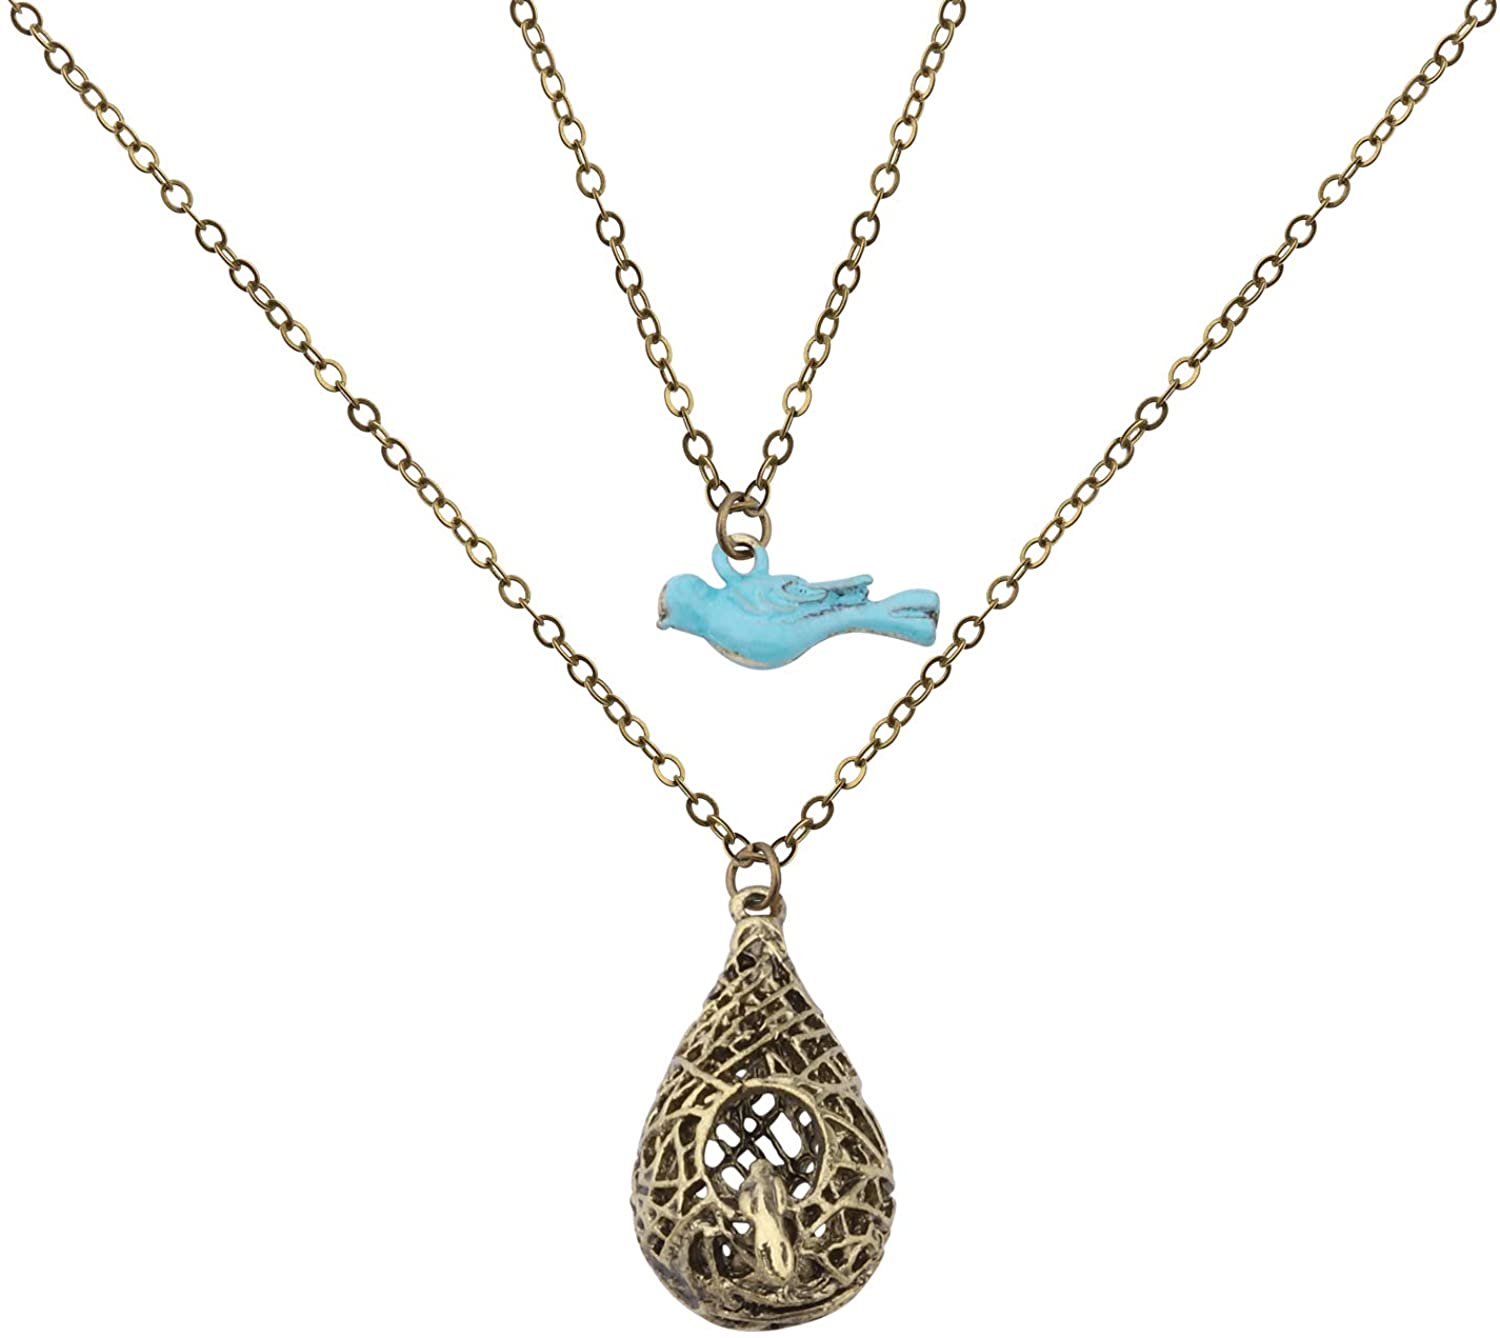 CENWA The Vampire Diaries Elena Inspired Necklace Double Layer Birds Nest Pendant Necklace